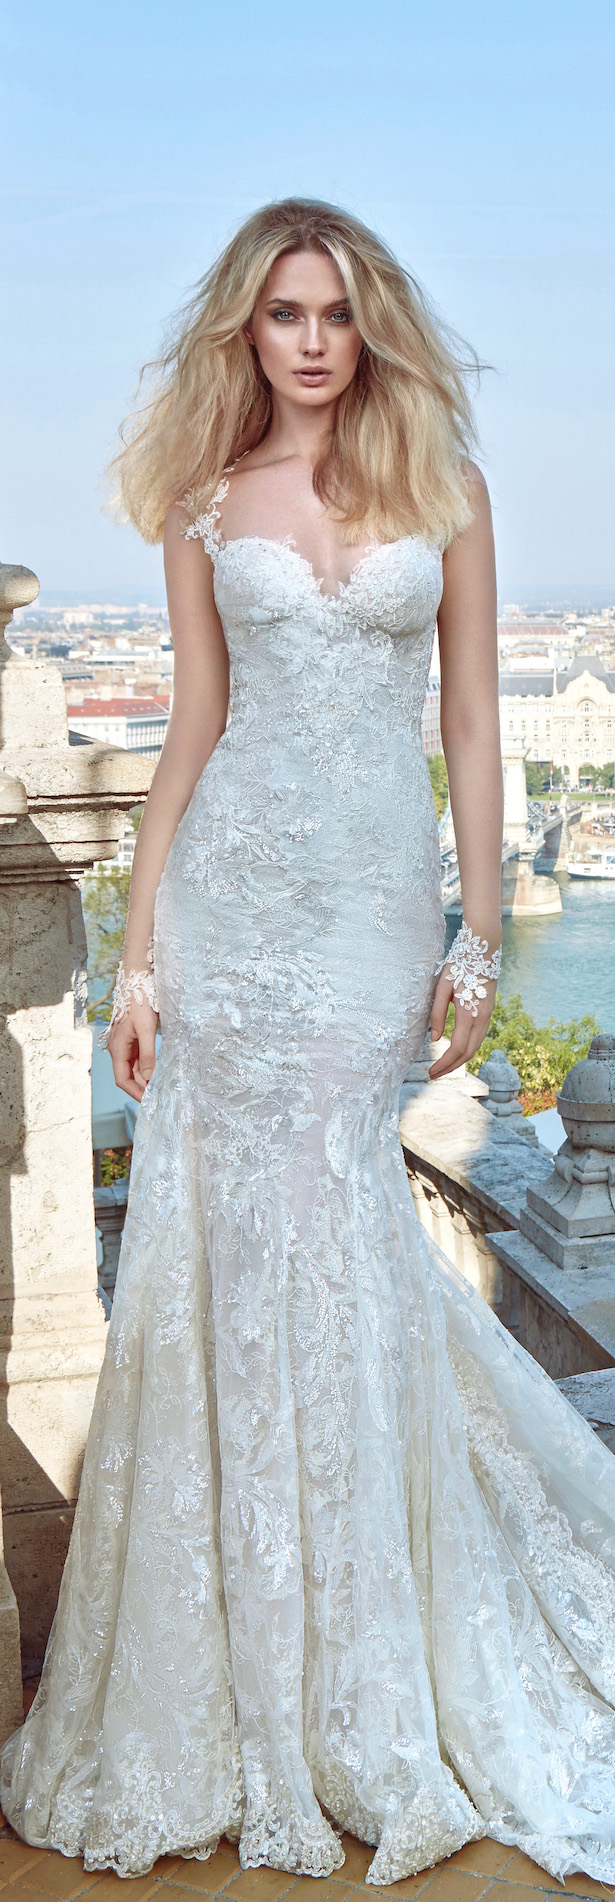 b62177cdd Galia Lahav Fall 2016 Ivory Tower Collection